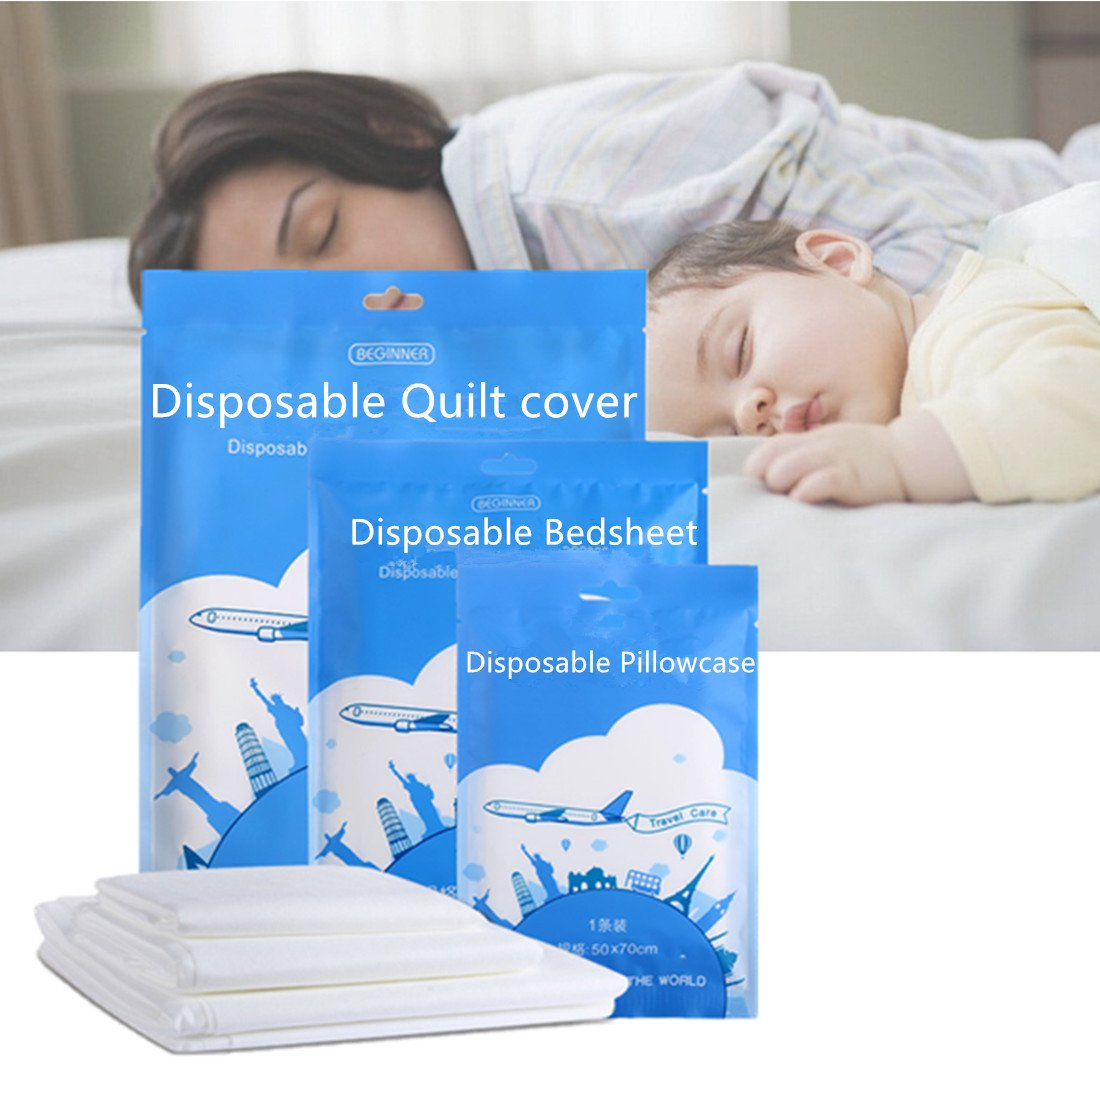 Bestja Portable Damp-proof Non-woven Disposable Quilt Cover Bedsheet Pillowcase for Business travel holiday (2 PCS Double bedsheet) BEGINNER